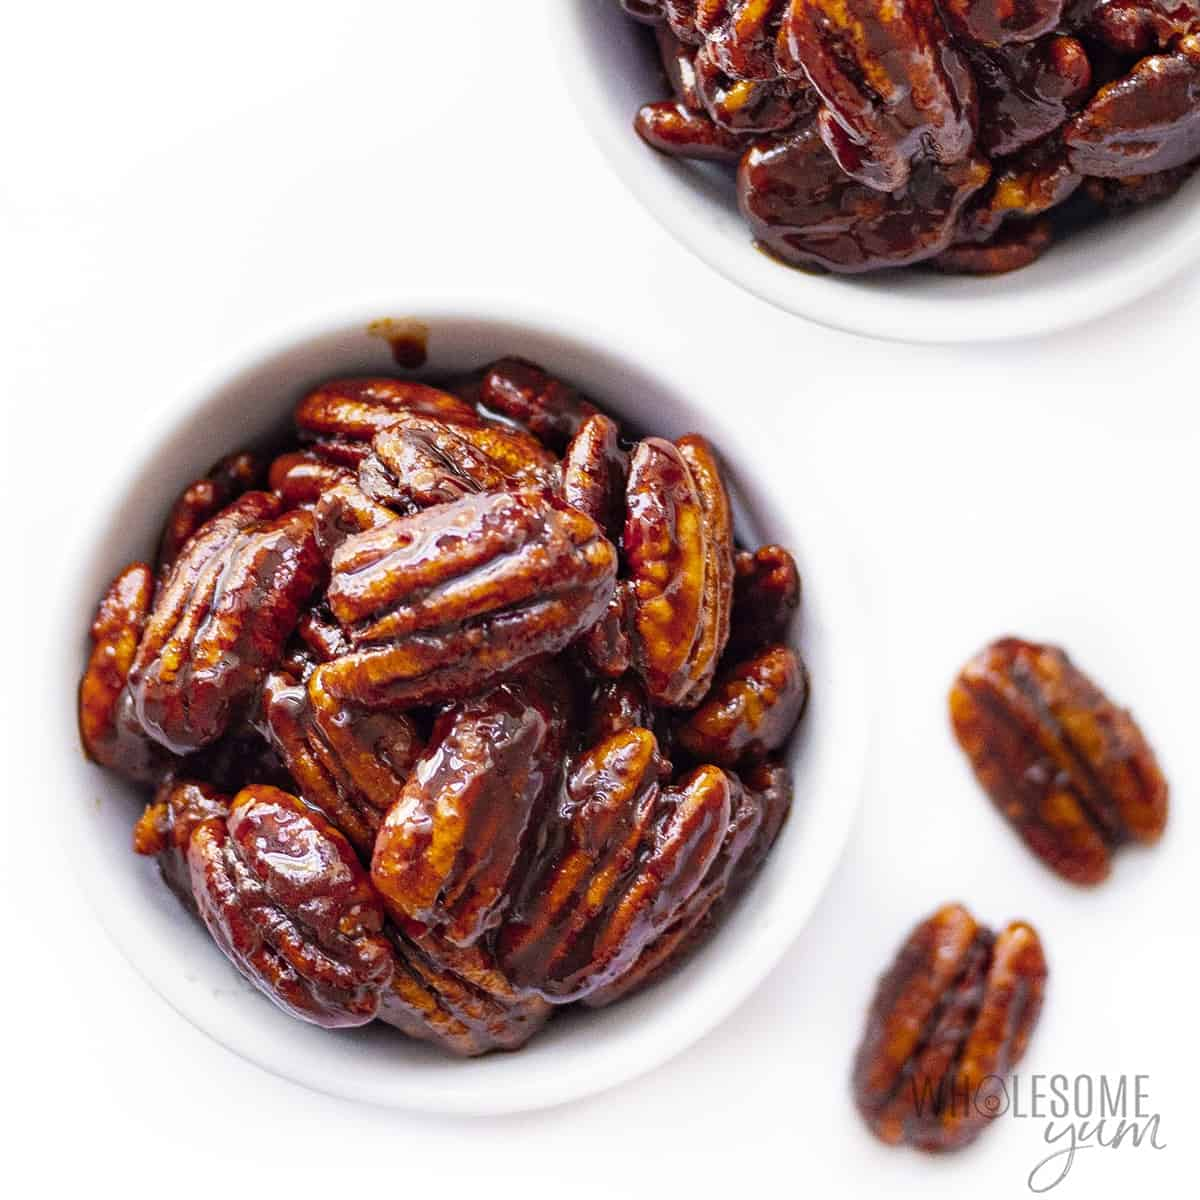 Bowls of keto candied nuts